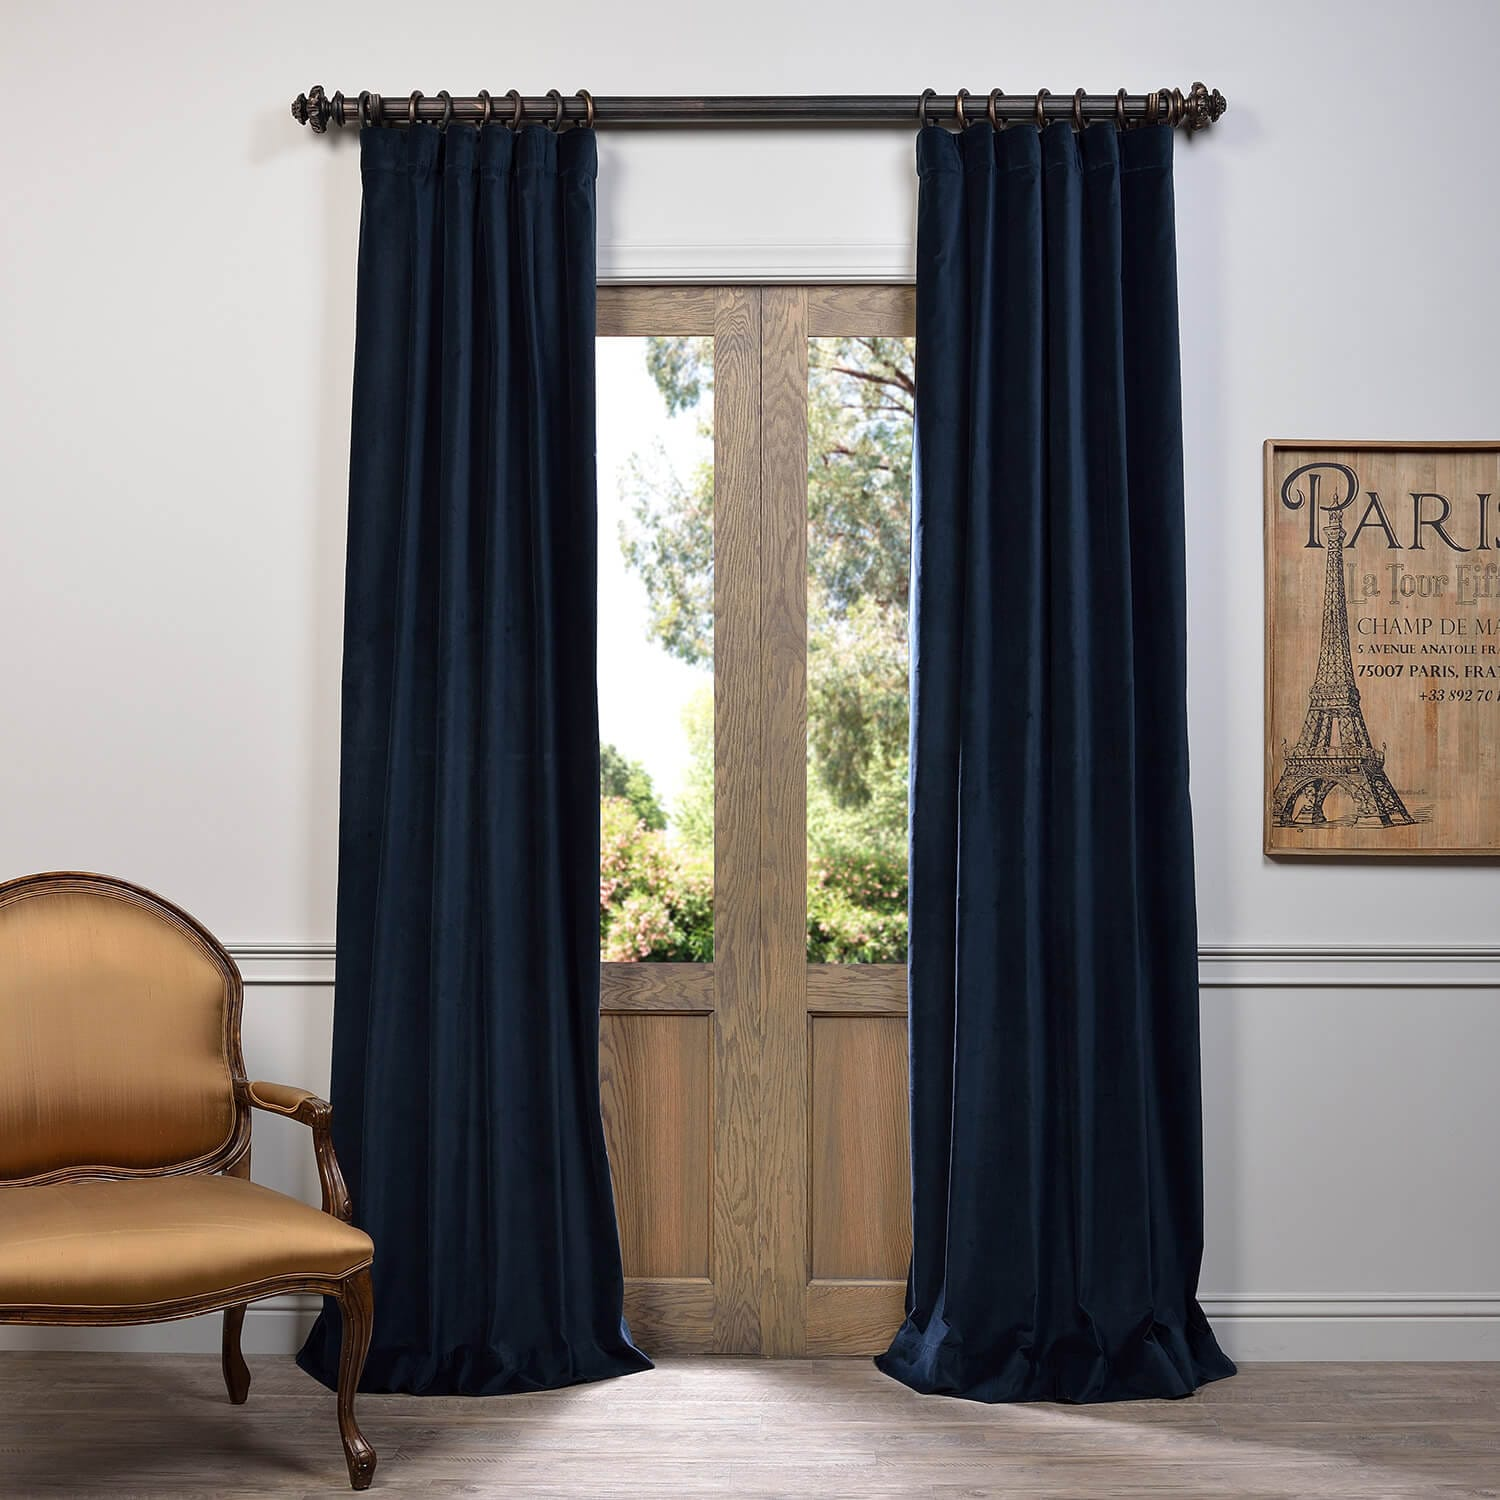 Cheap Stylish Curtains Navy Vintage Cotton Velvet Curtain